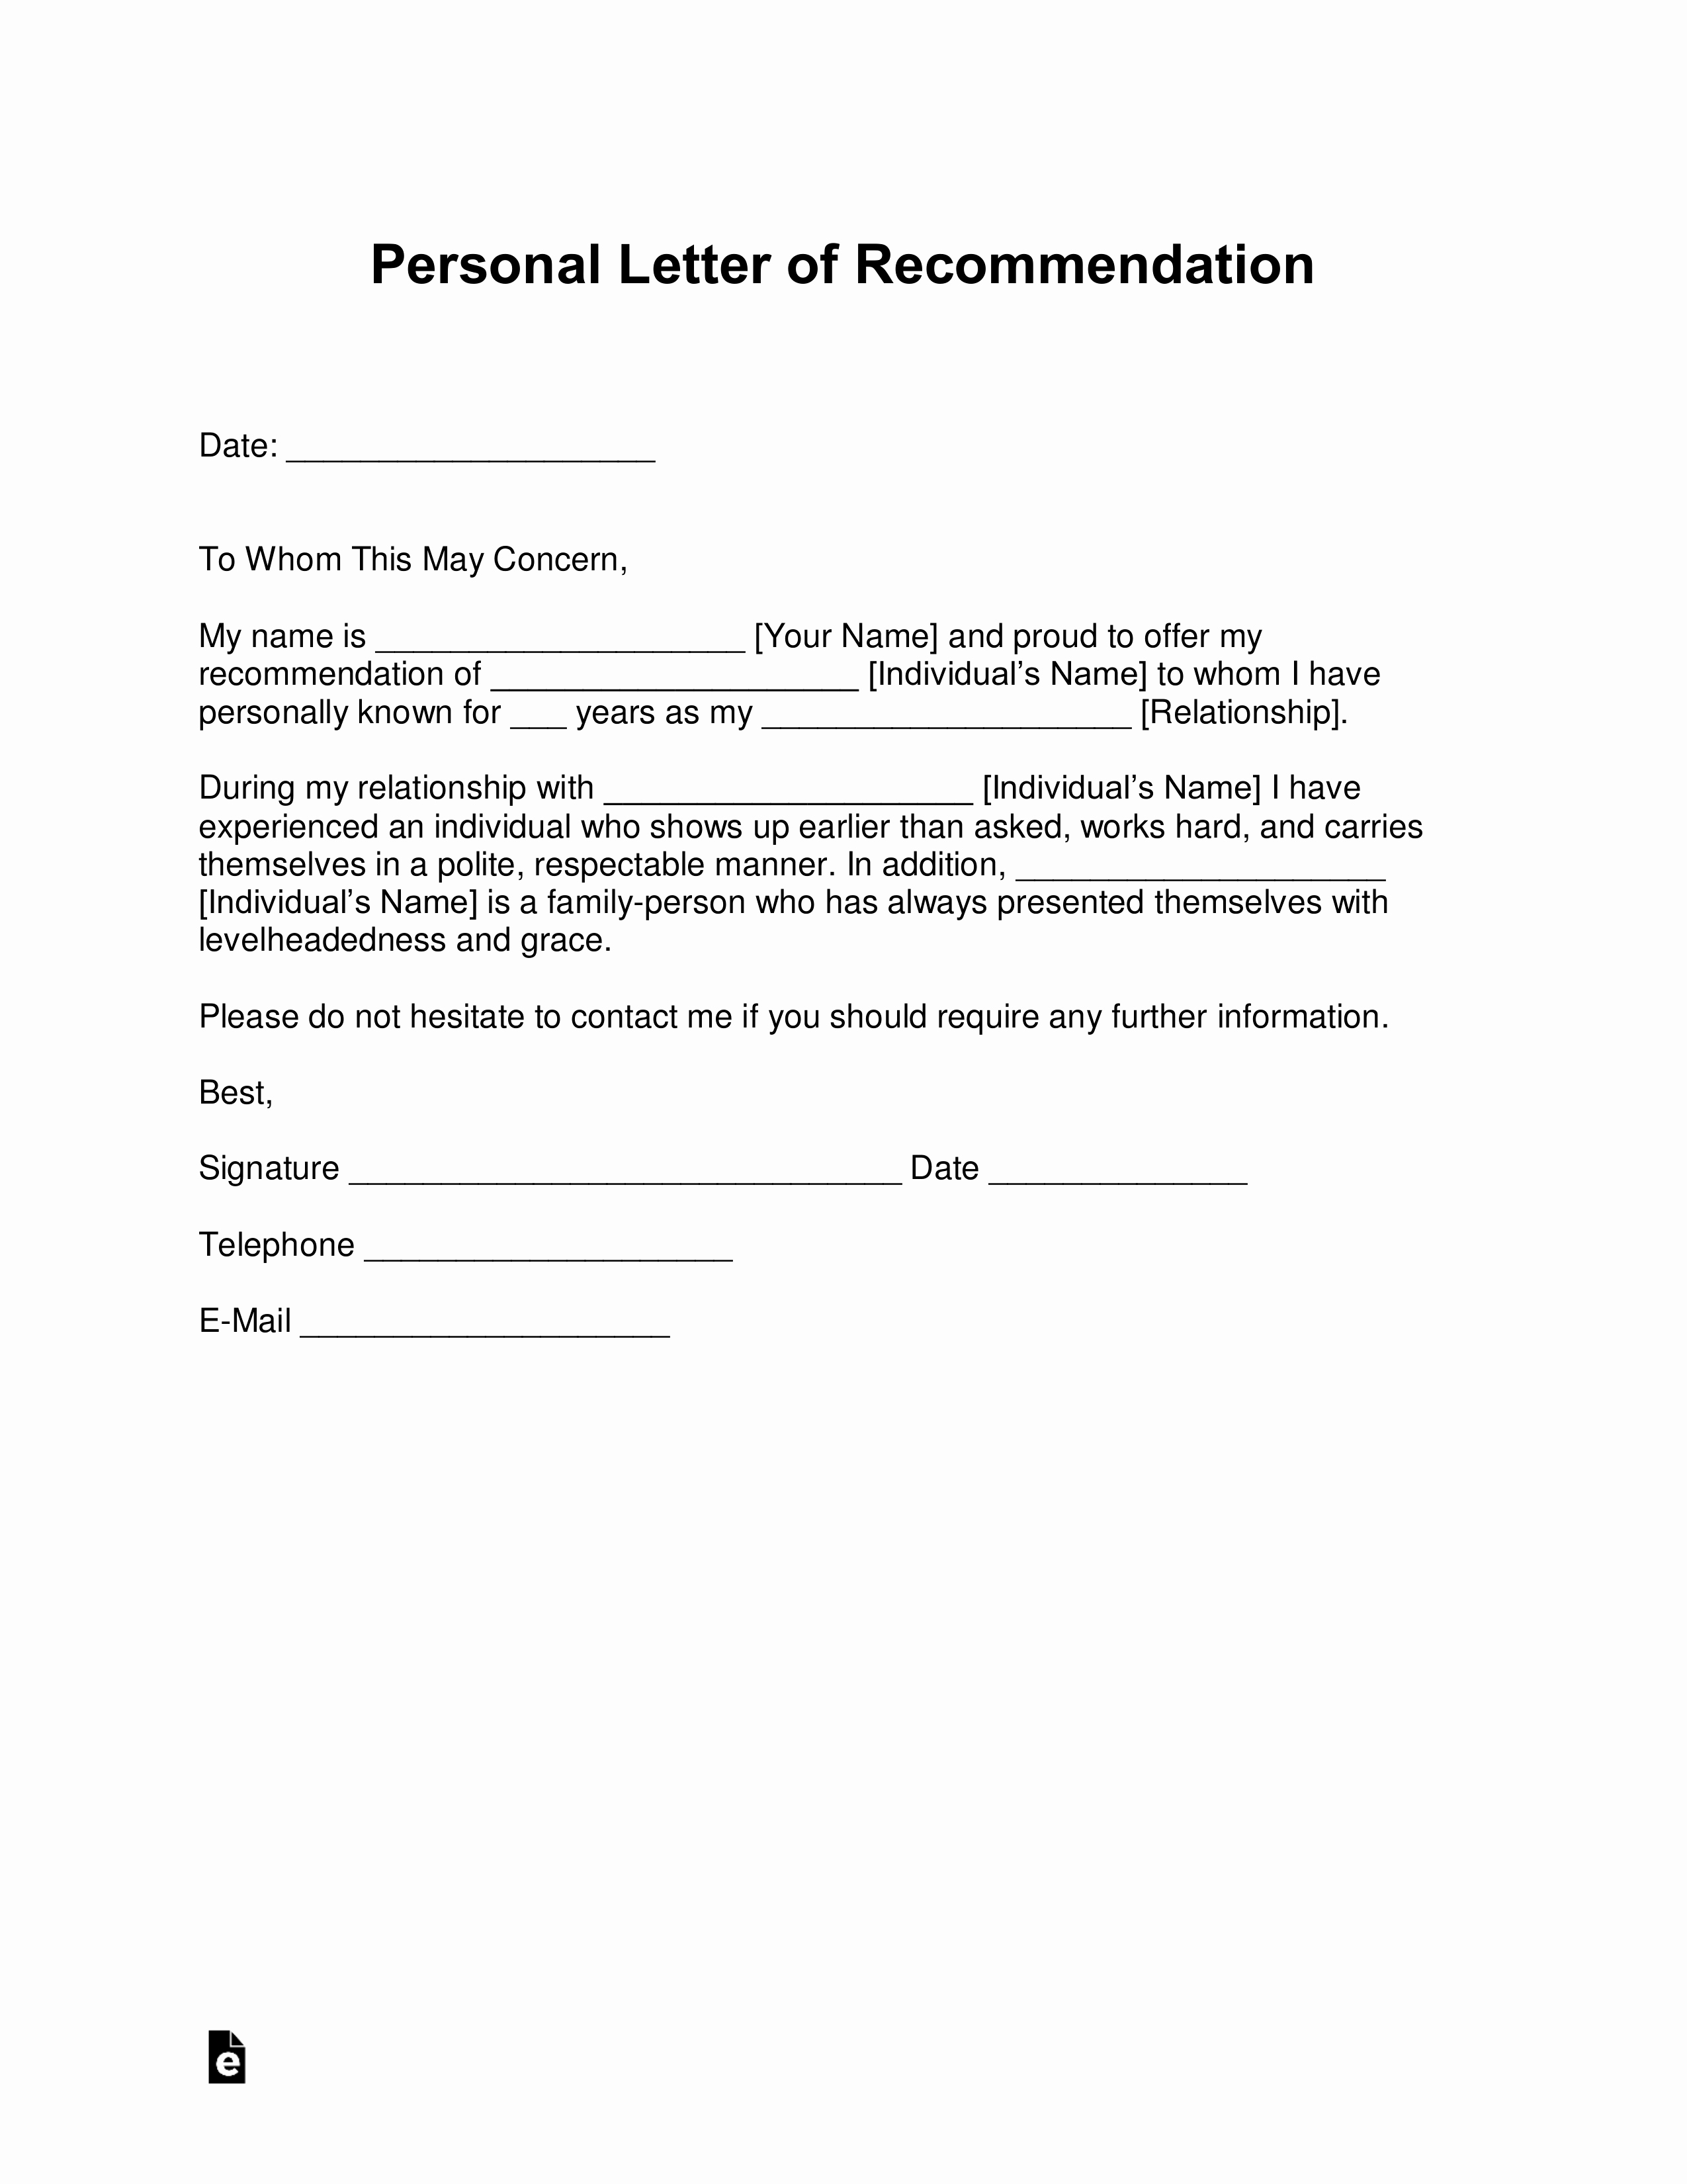 Personal Letter Of Recommendation Templates Inspirational Free Personal Letter Of Re Mendation Template for A